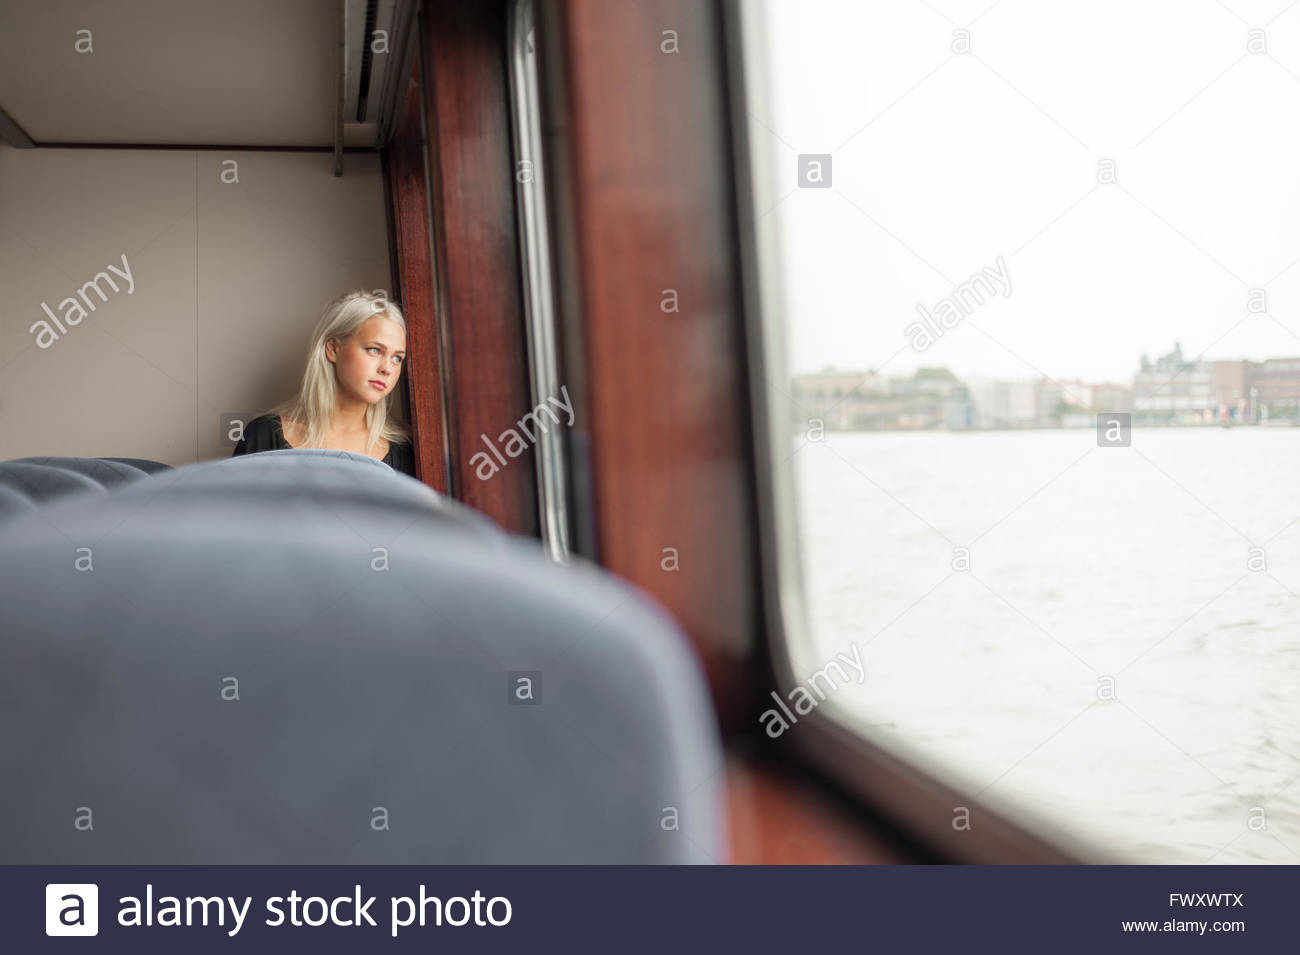 Sweden, Vastra Gotaland, Gothenburg, Young woman looking through window in train Stock Photo